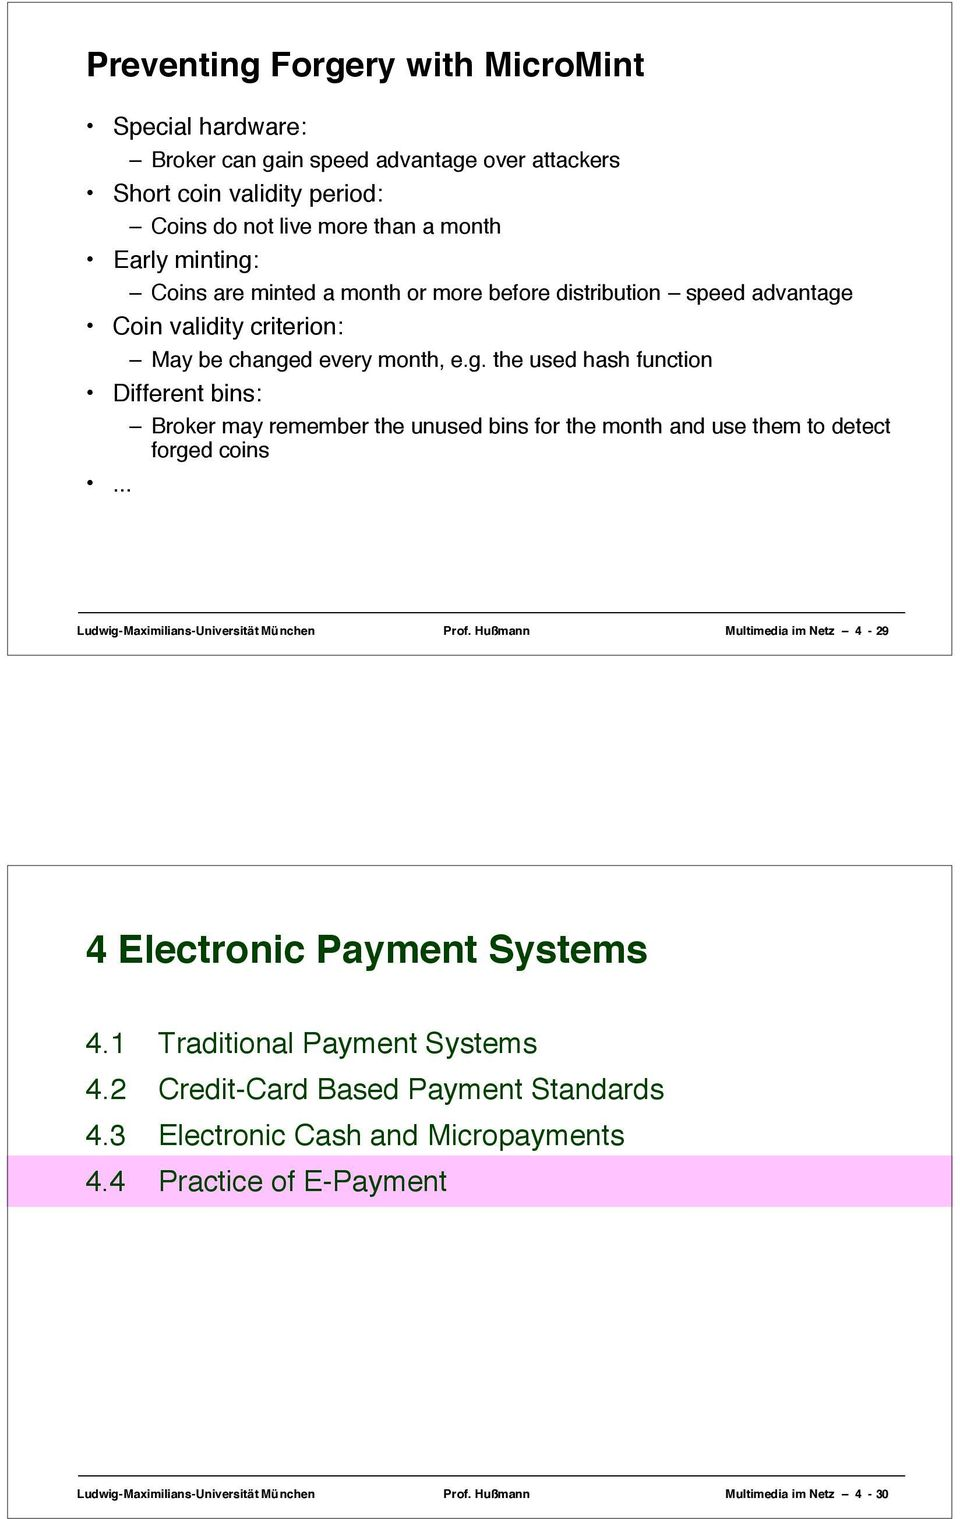 .. Ludwig-Maximilians-Universität München Prof. Hußmann Multimedia im Netz 4-29 4 Electronic Payment Systems 4.1 Traditional Payment Systems 4.2 Credit-Card Based Payment Standards 4.